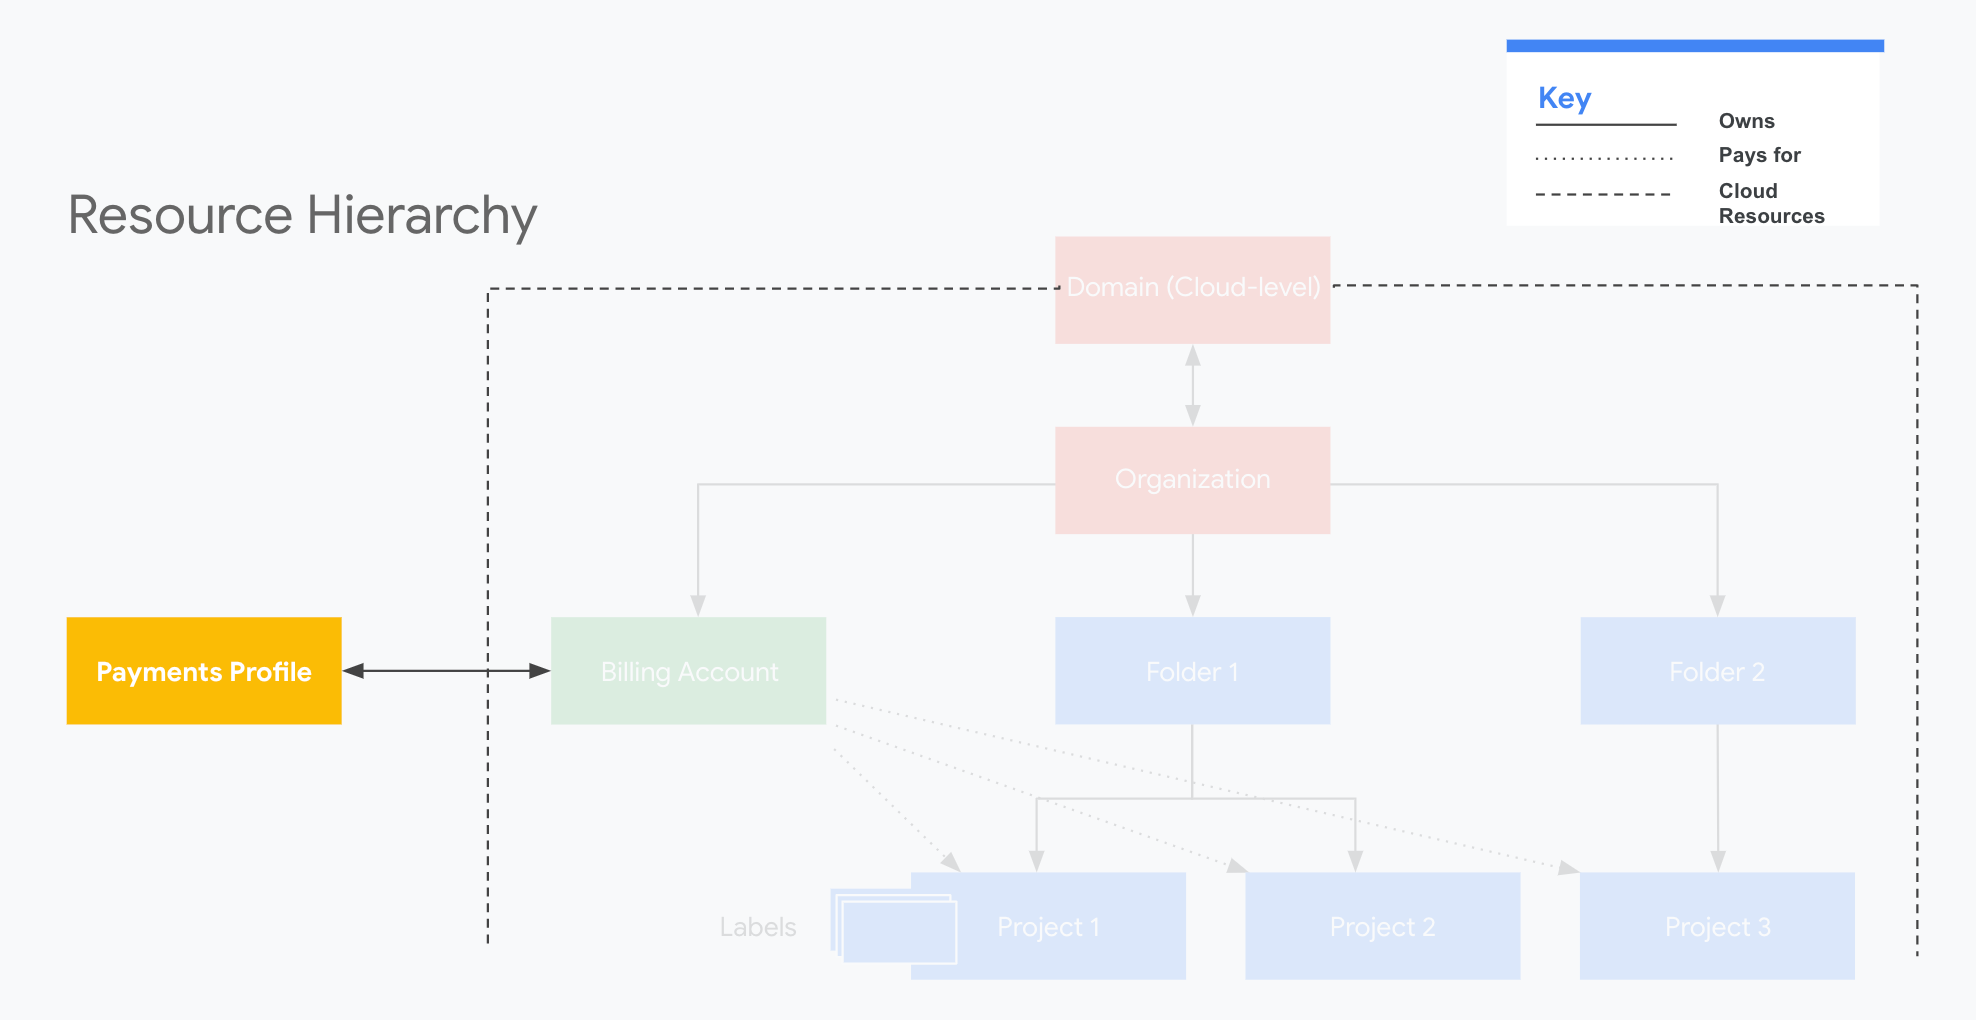 Google Payments Profile in the Resource Hierarchy